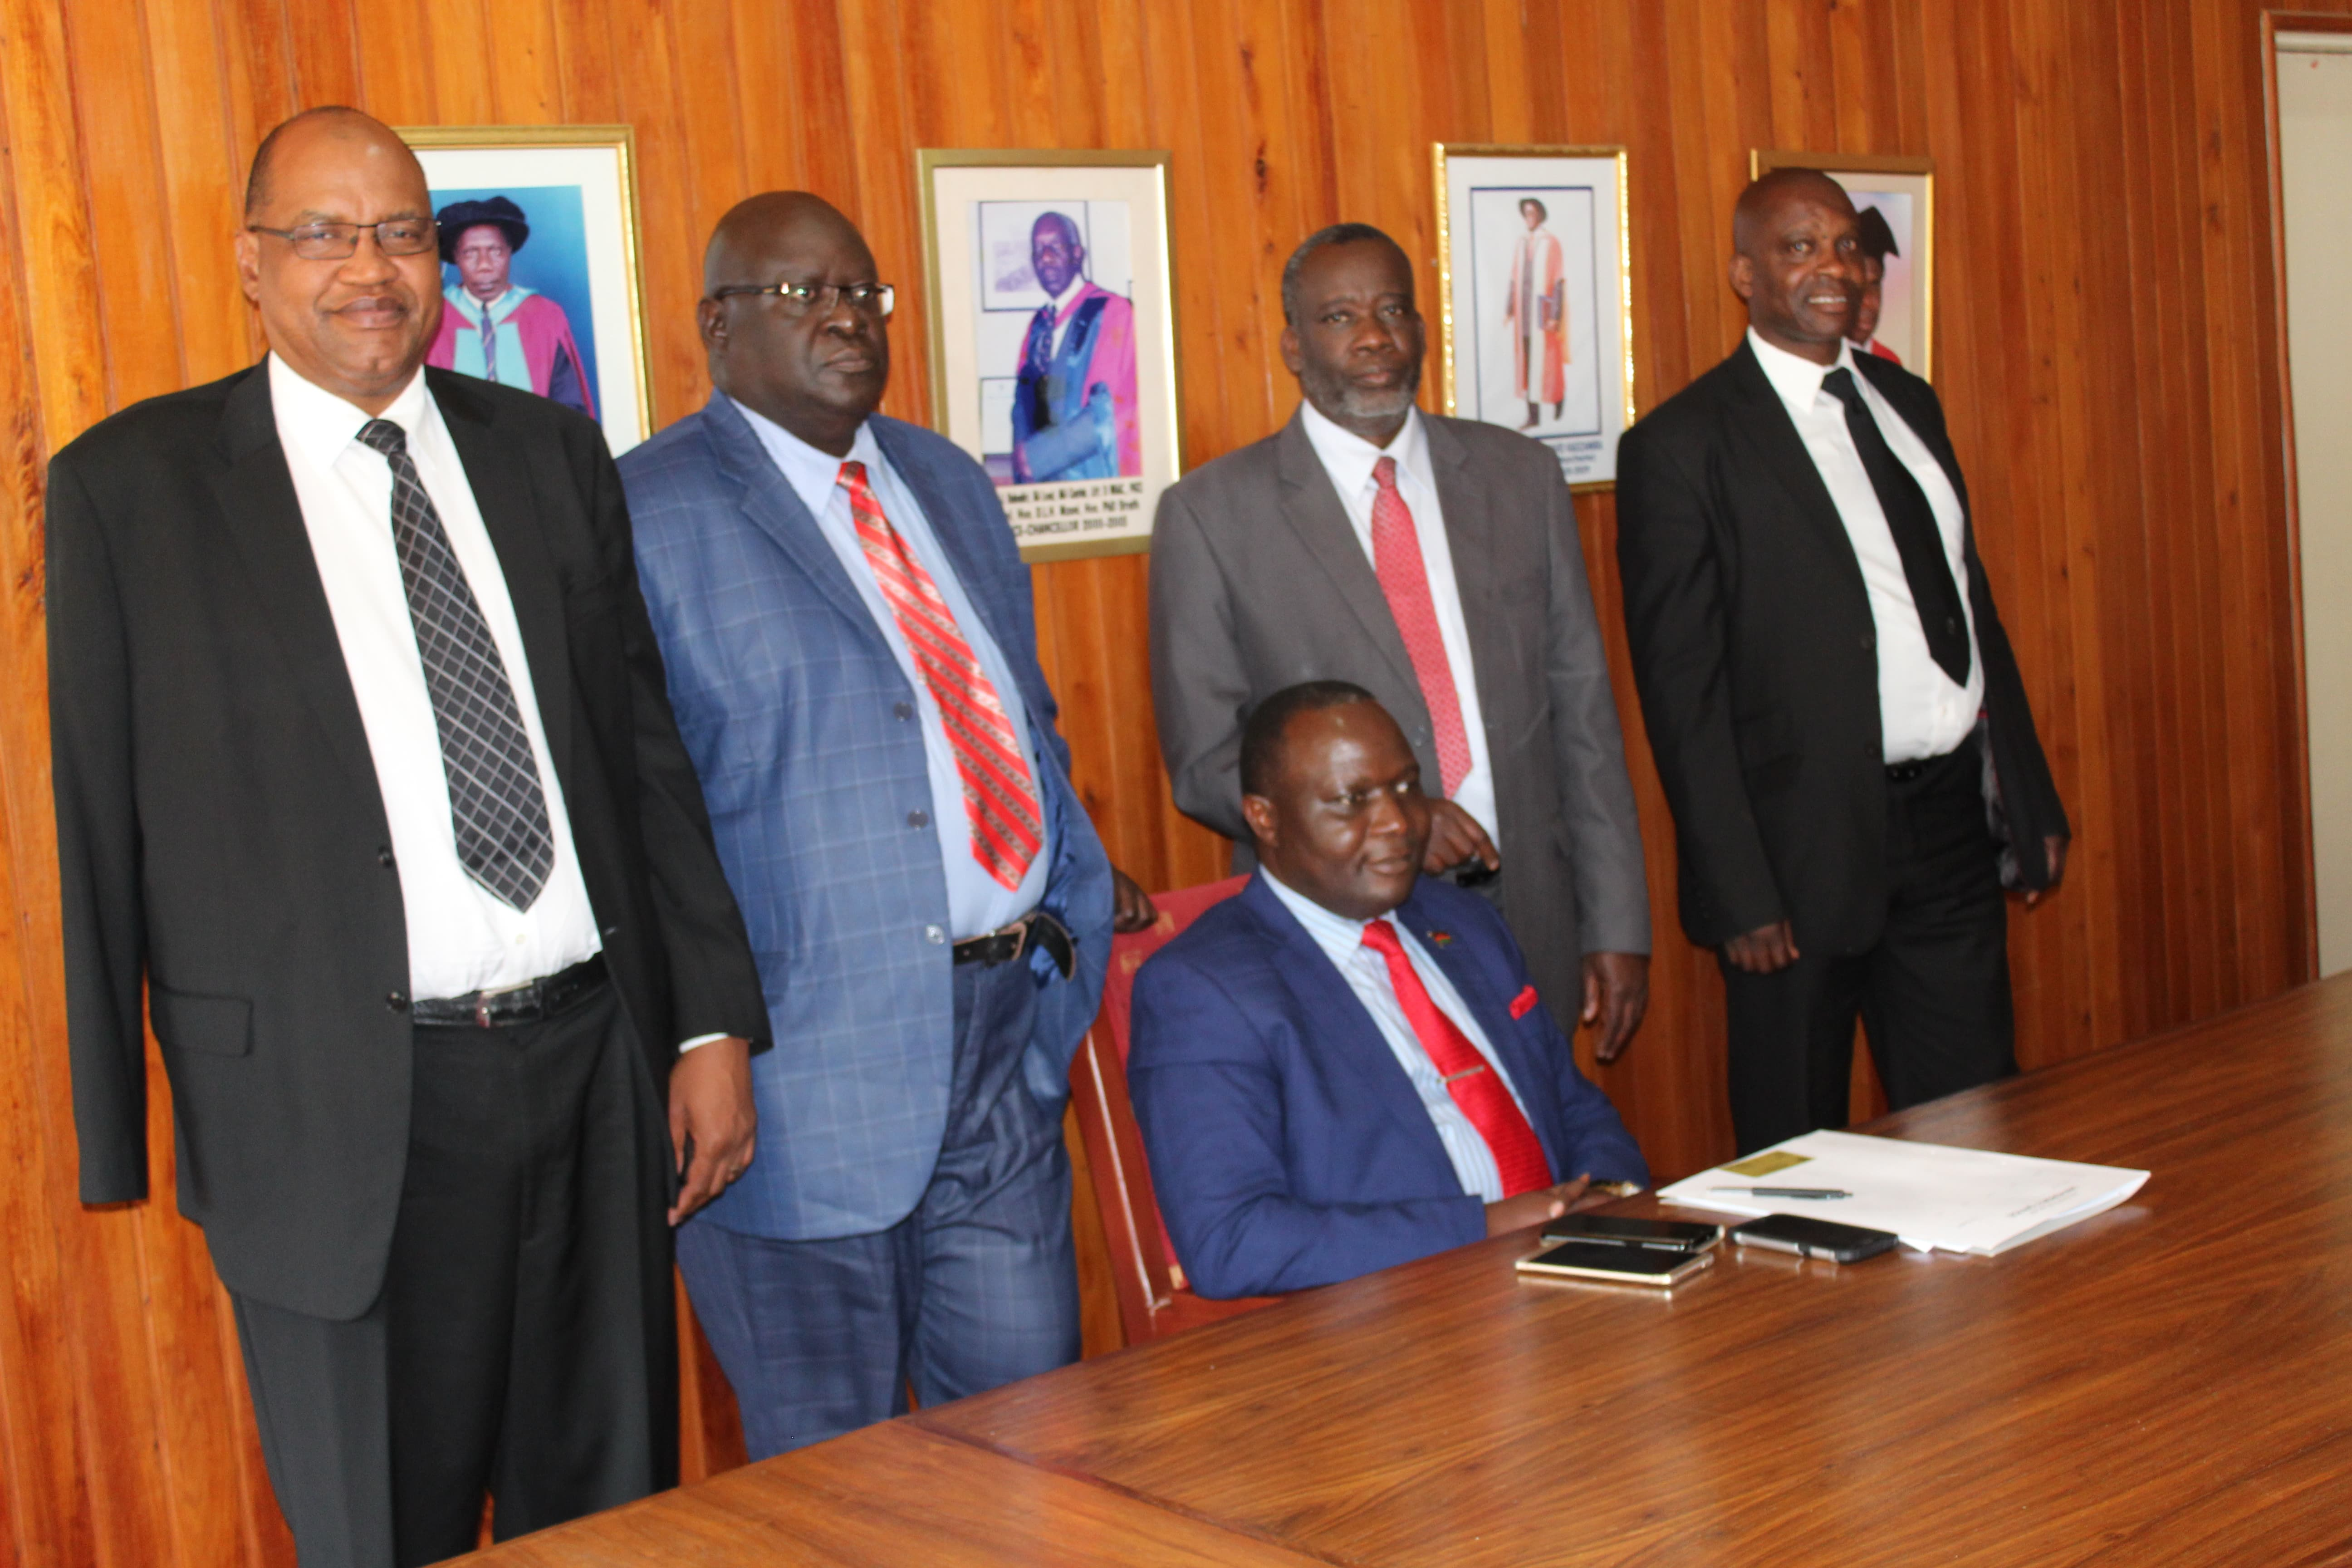 NEW COUNCIL CHAIRPERSON MEETS UNIMA LEADERSHIP